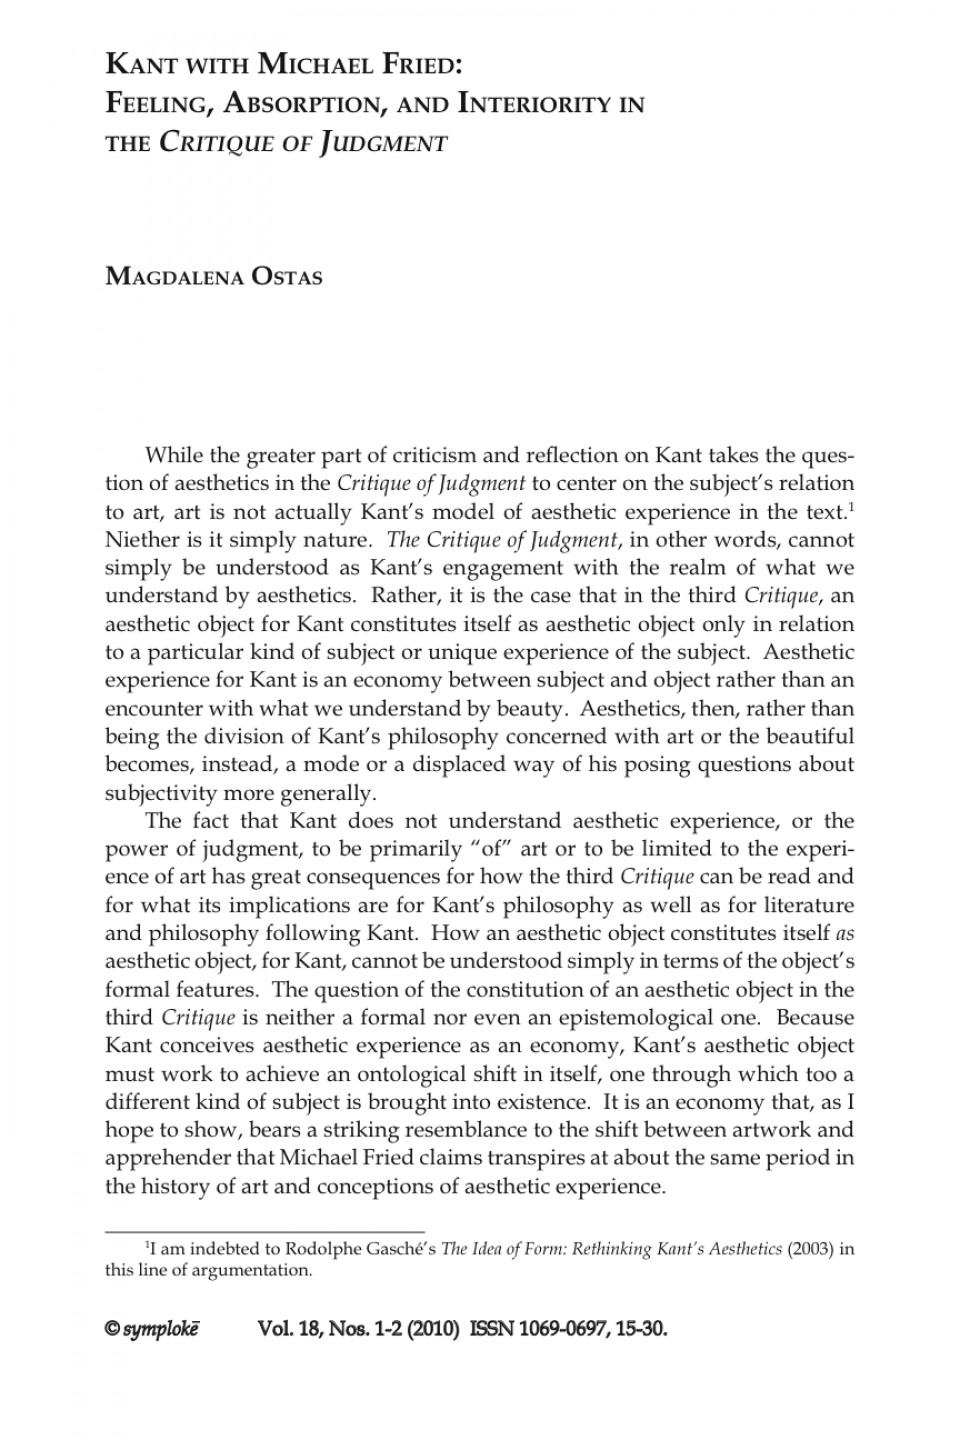 002 Critique Essay Example Ostas Remarkable Layout Speech Examples How To Write A Of An Article 960